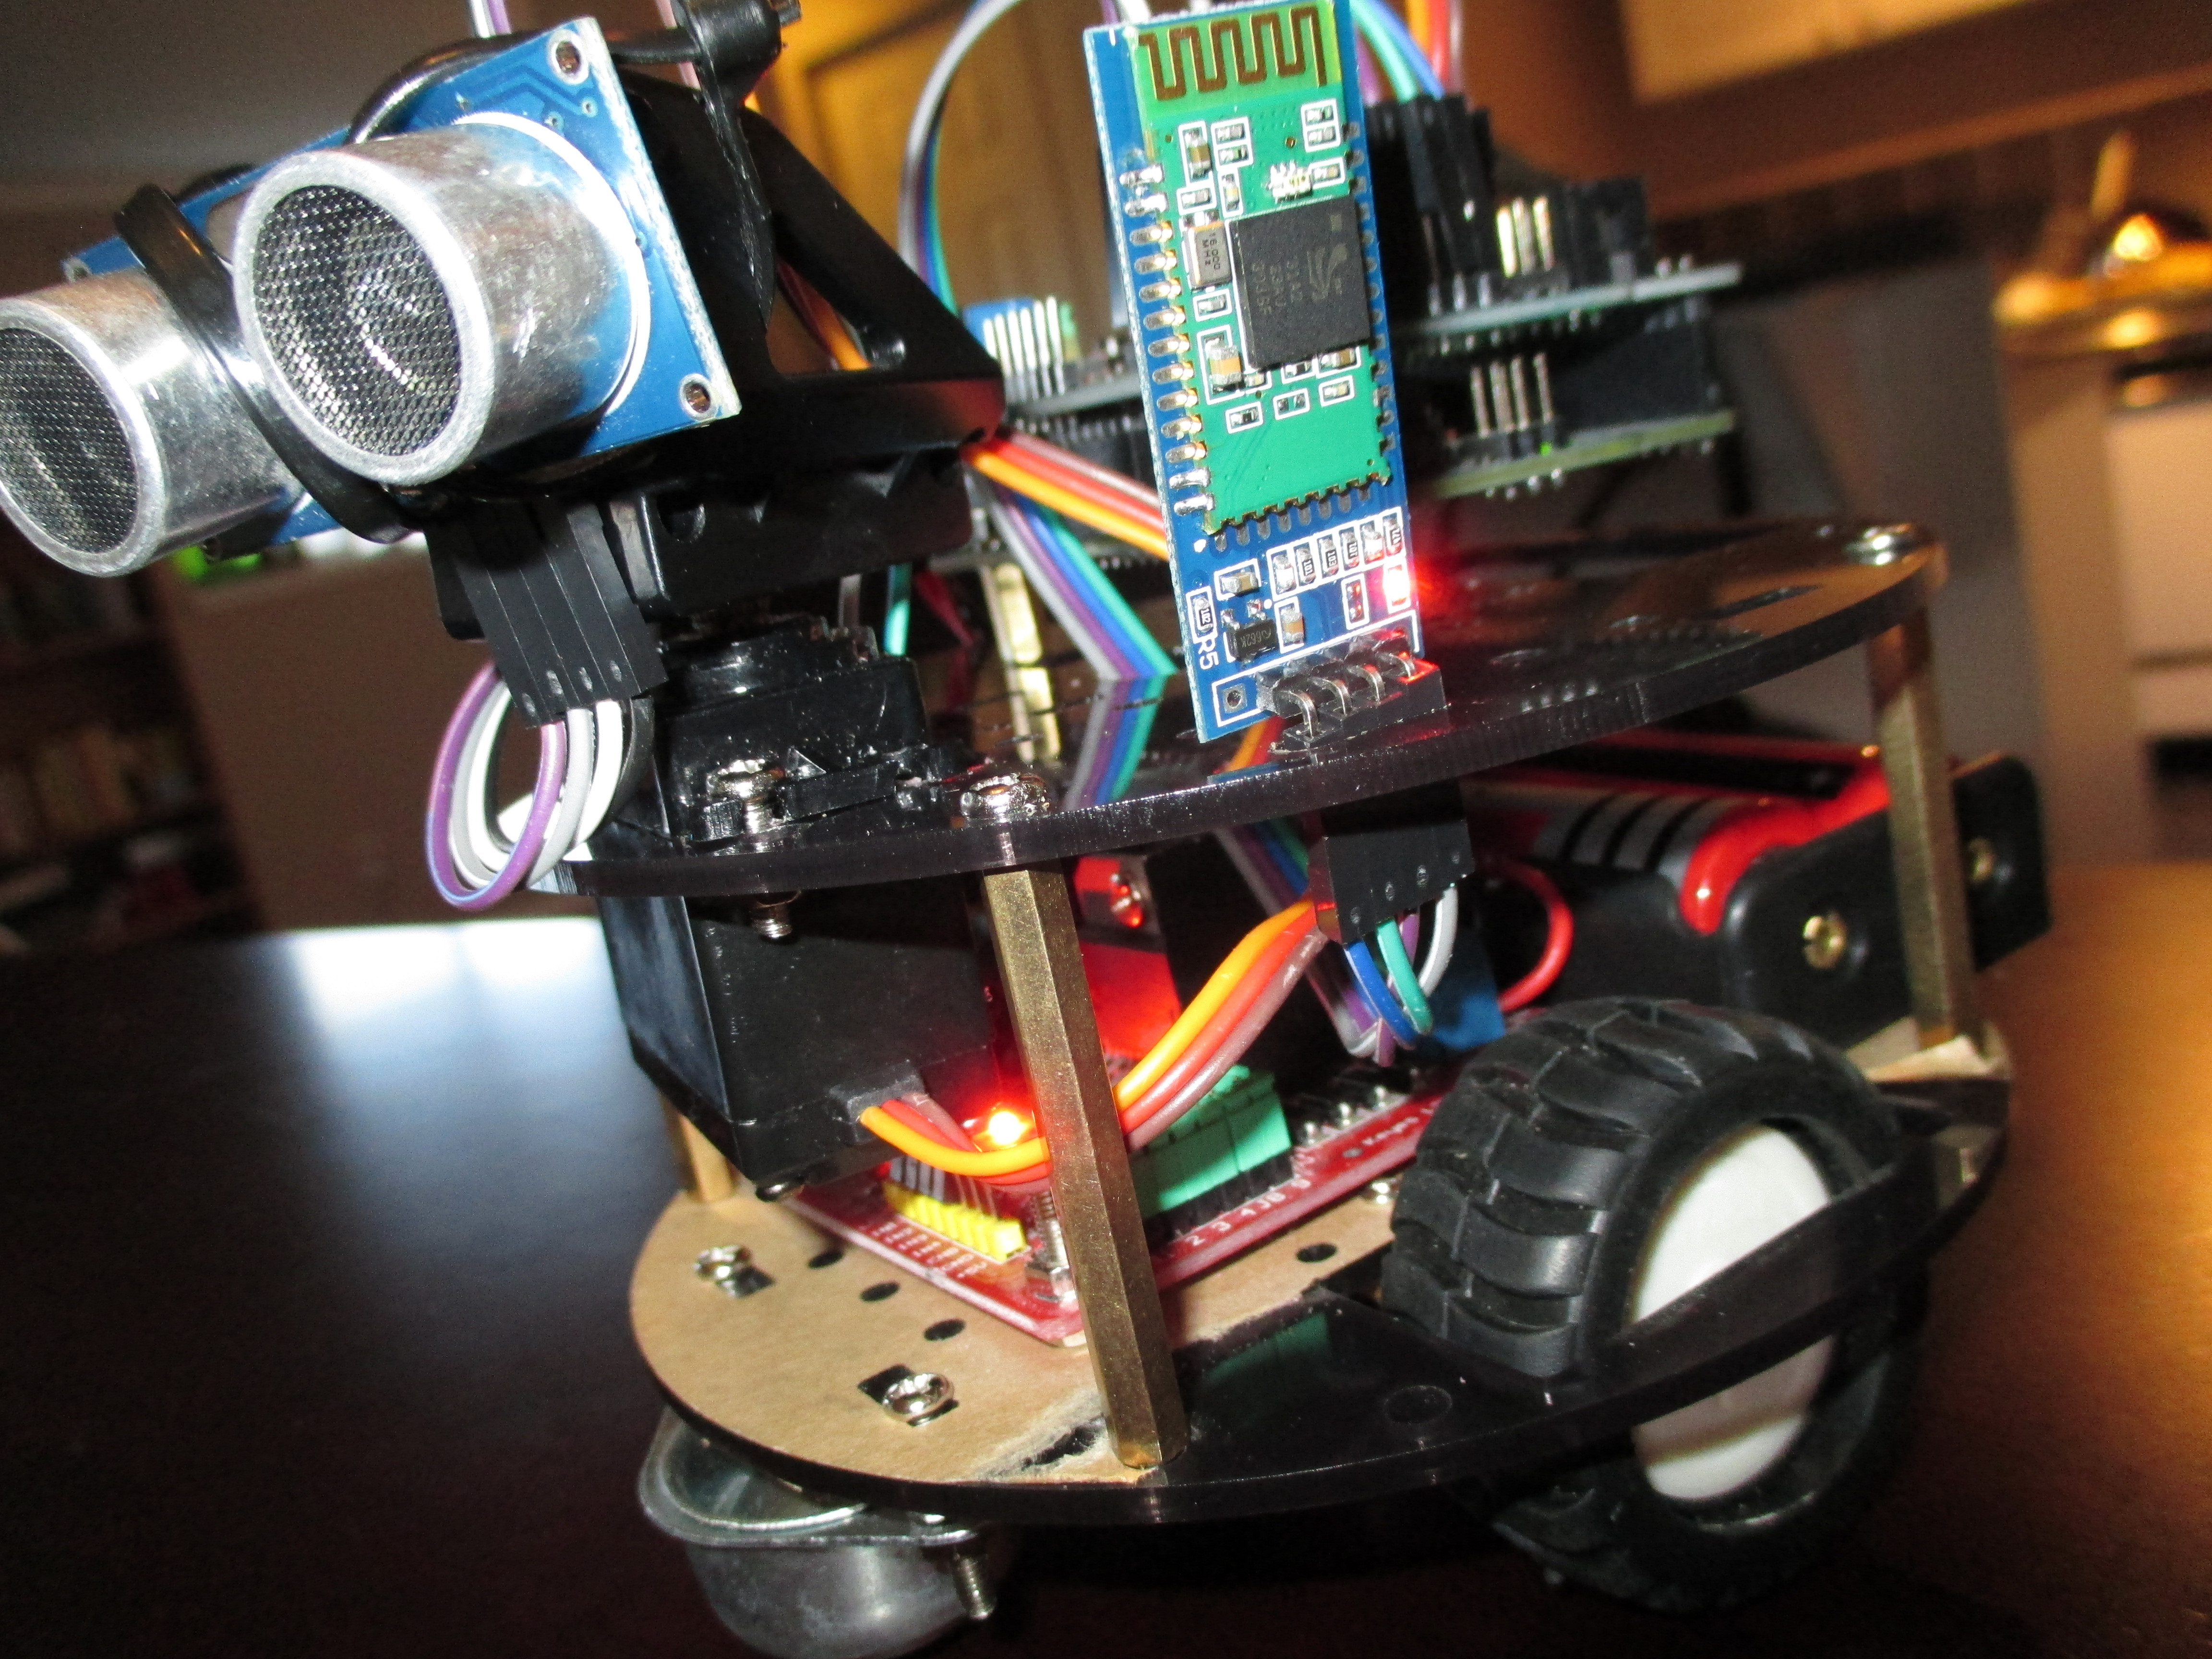 Manual control of an arduino based robot using android